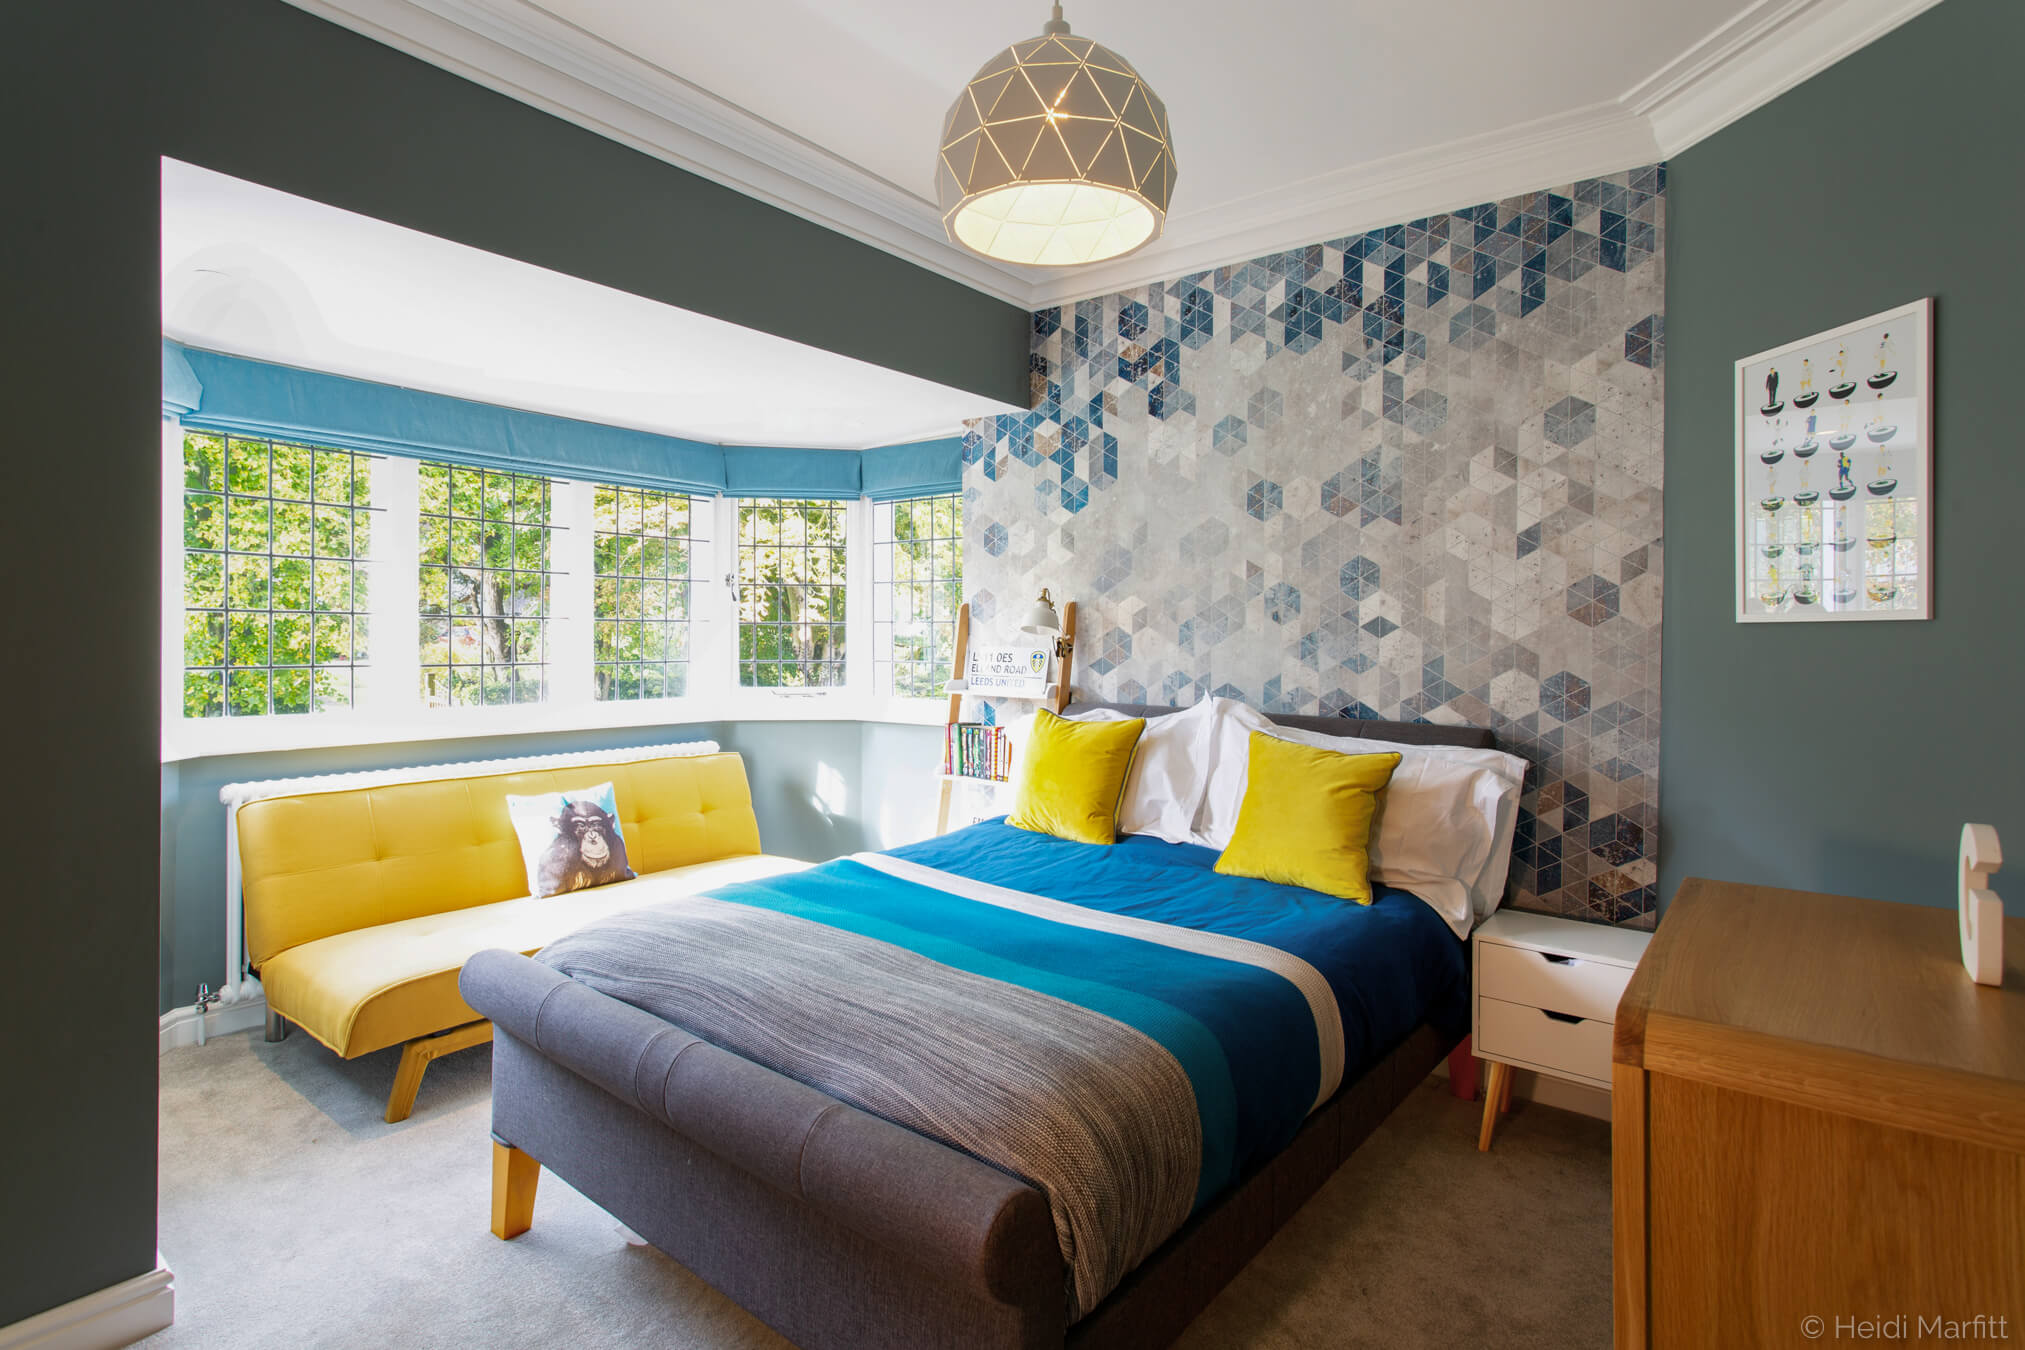 Geometric wallpaper brings a sophisticated vibe to this boy's bedroom